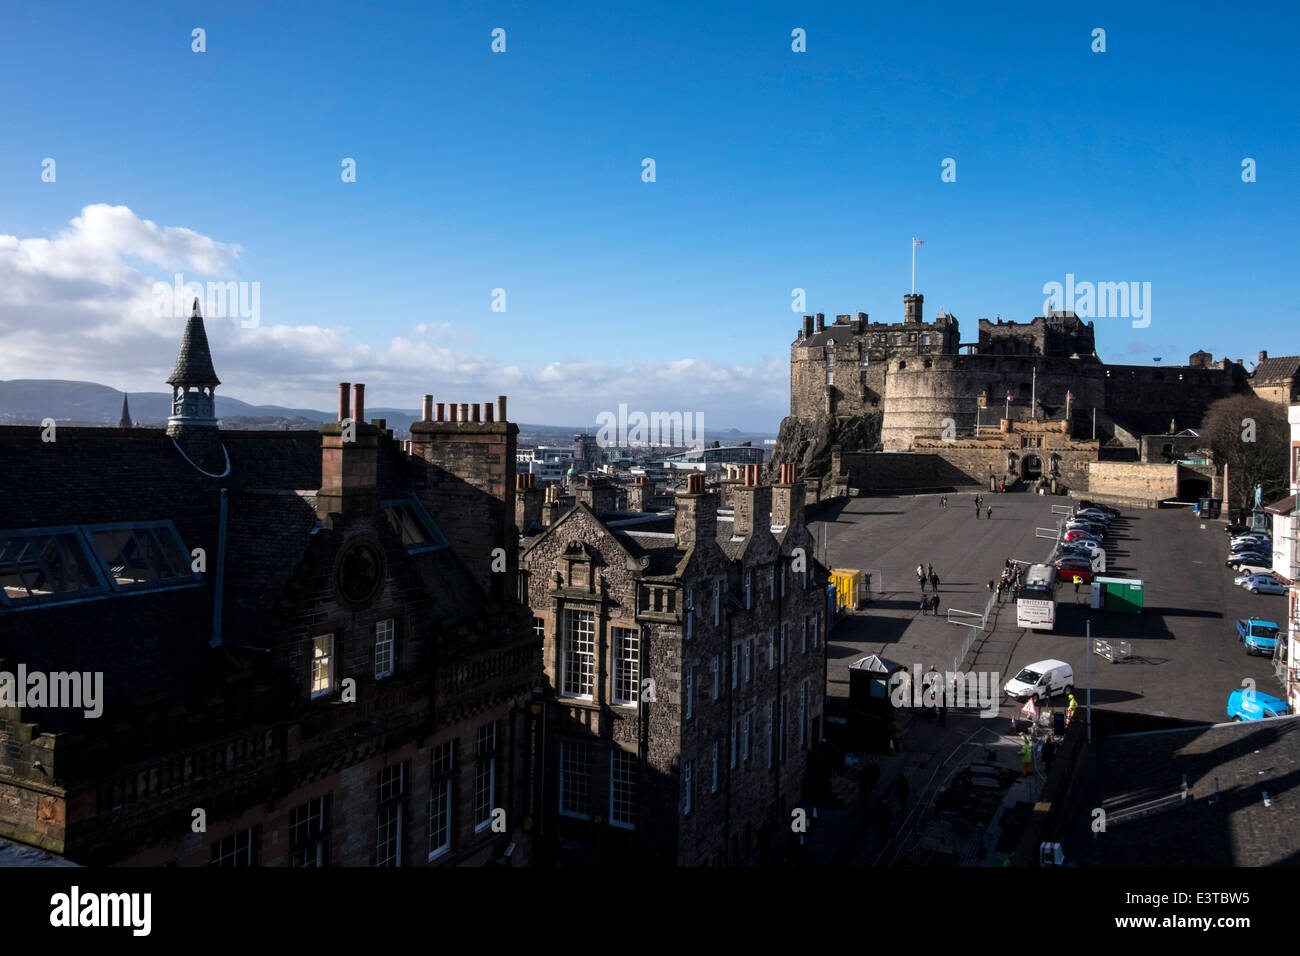 Edinburgh's Castle view from Camera Obscura building - Stock Image